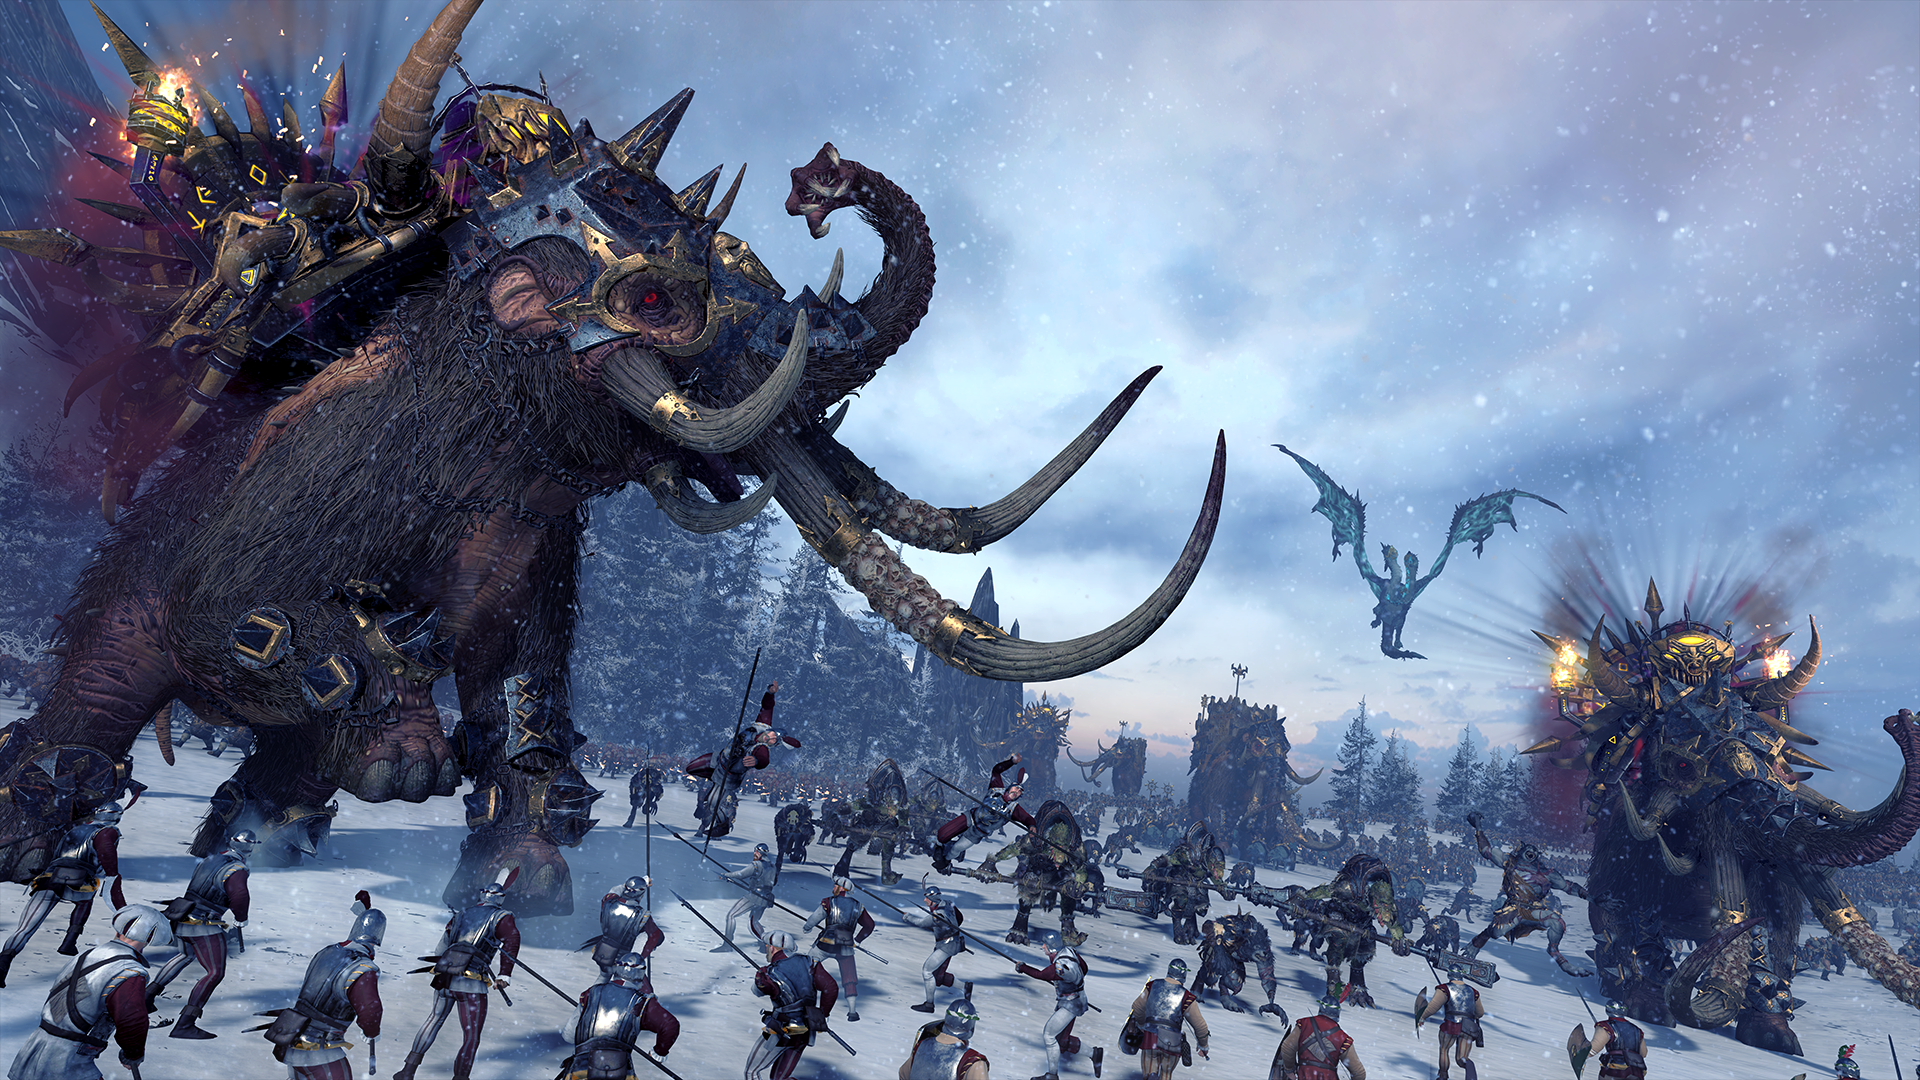 Video Game - Total War: Warhammer  Fantasy Norsca (Total War: Warhammer) Wallpaper